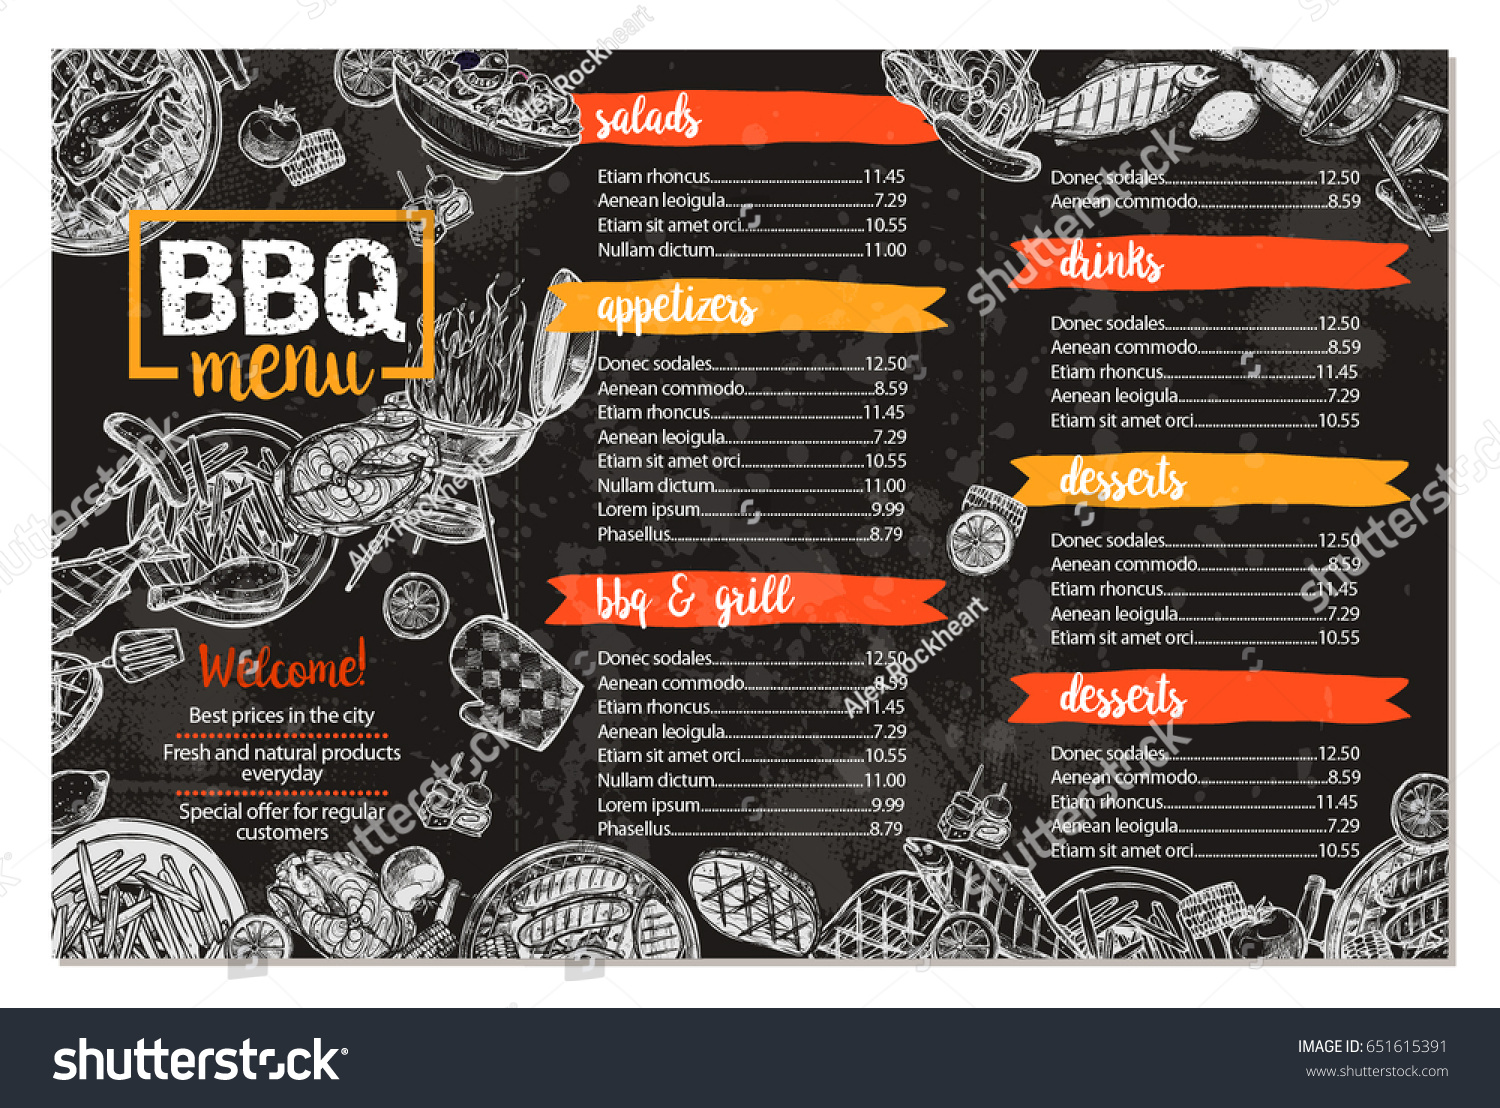 Barbecue restaurant menu template design bbq stock vector royalty barbecue restaurant menu template design of bbq brochure in sketch style on chalkboard maxwellsz